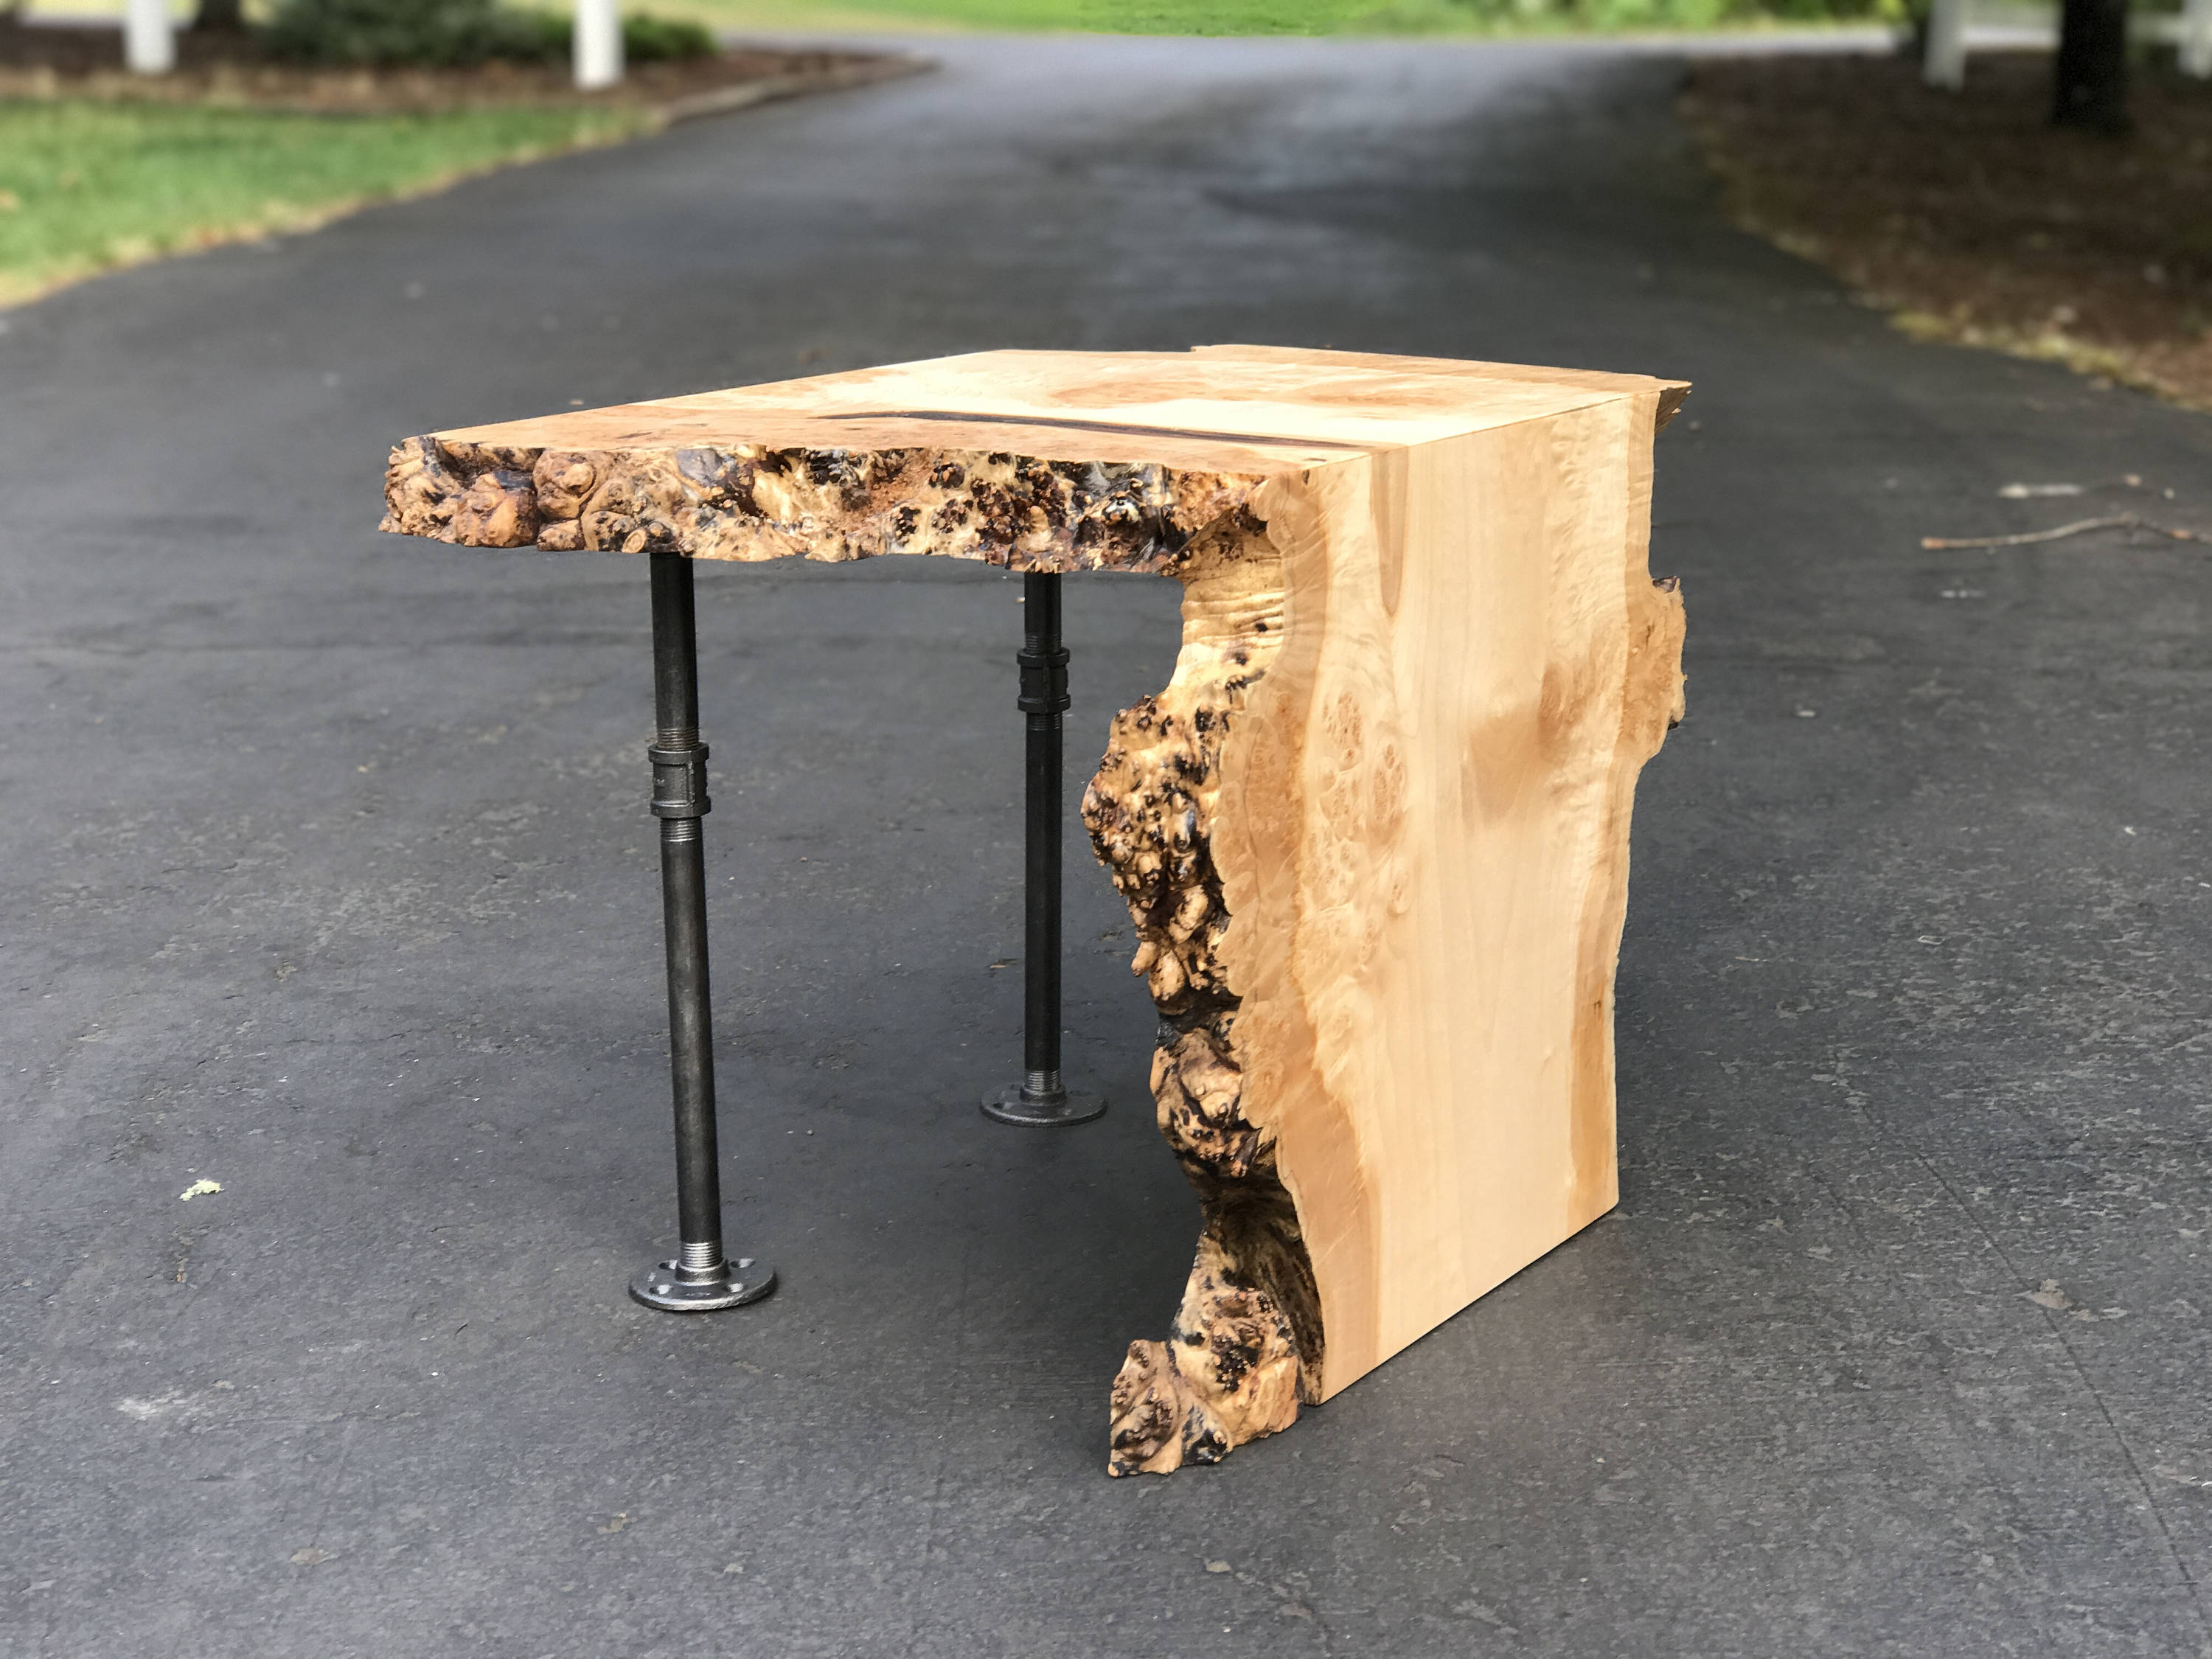 sold live edge maple waterfall end table with pipe legs etsy fullxfull burl wood accent wooden bedside cabinets side light furniture leg extensions plastic outdoor umbrella hole